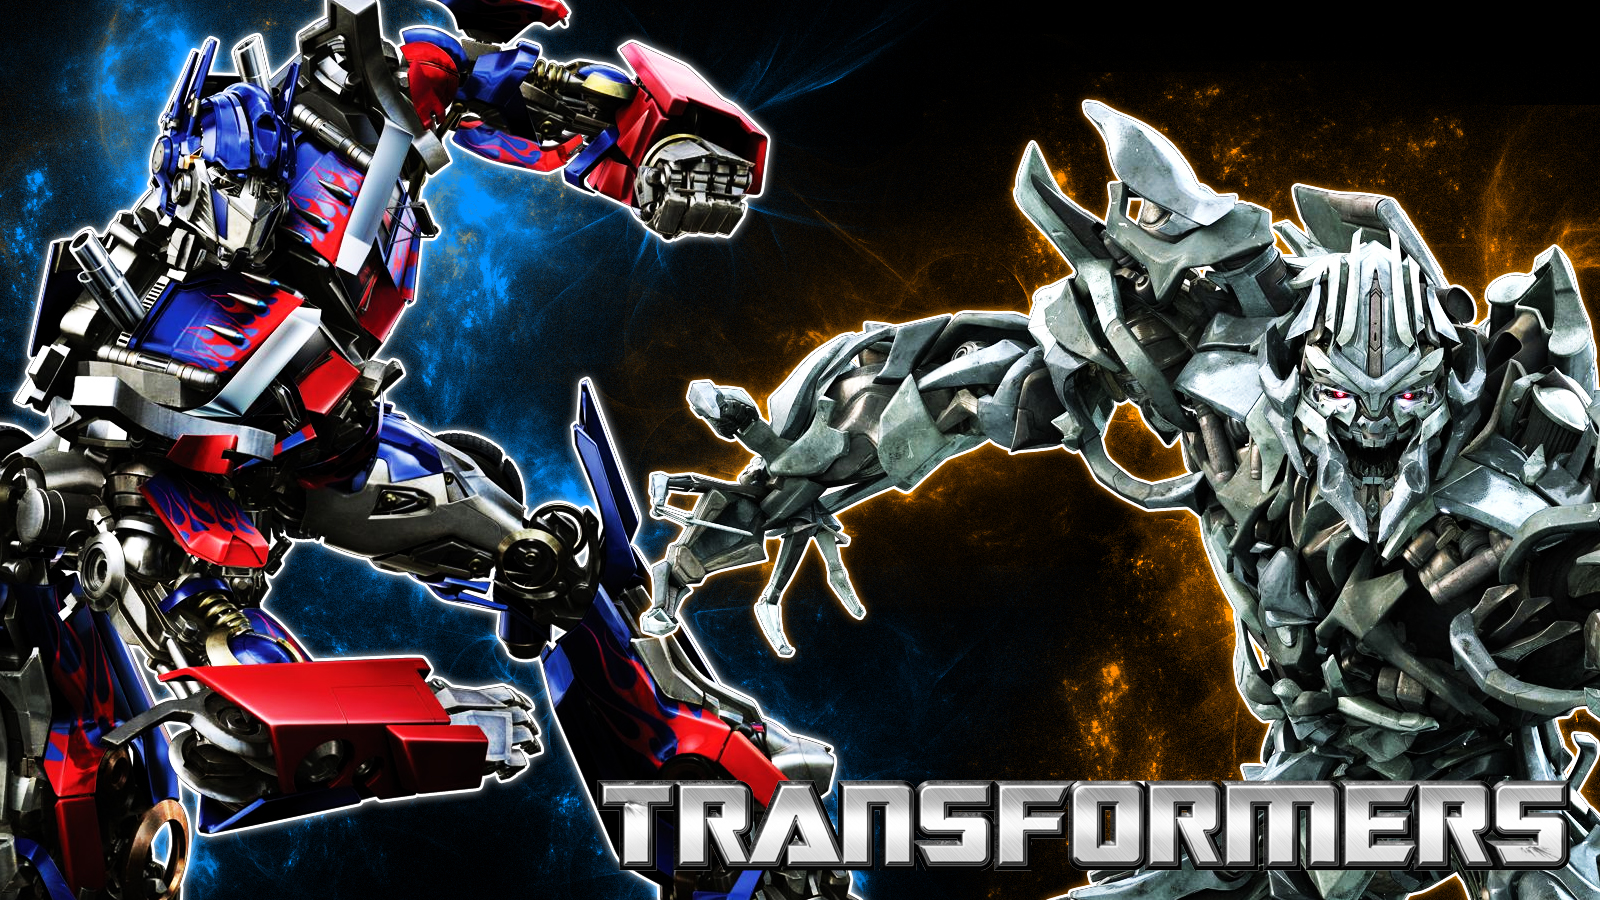 Transformers Fall Of Cybertron Wallpaper Hd Game On Line By Emhan Palu